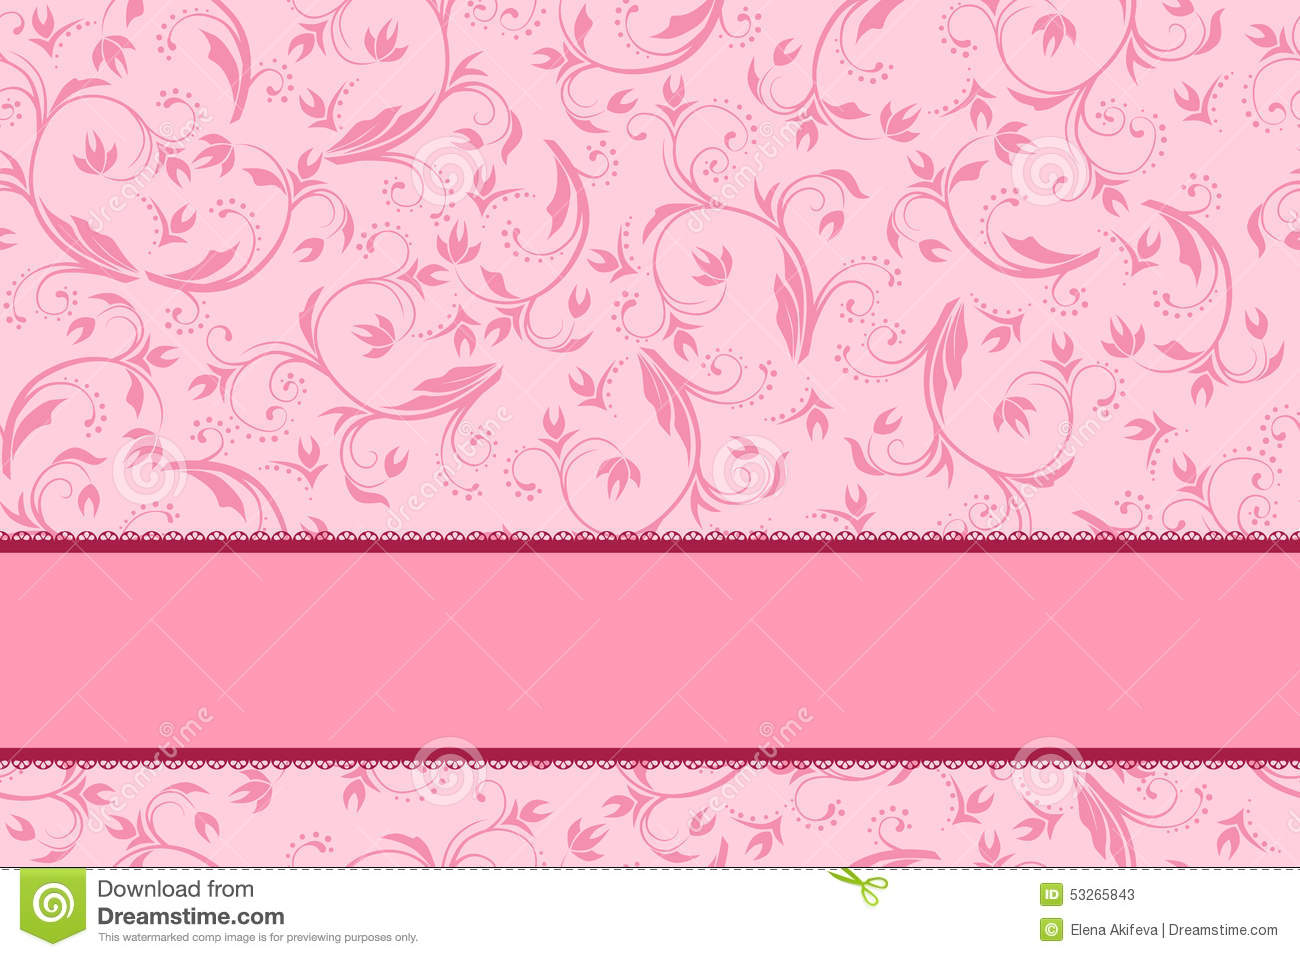 Cute Baby Girl Hd Wallpaper Download Background Pink Floral With Bow Pattern Seamless Stock